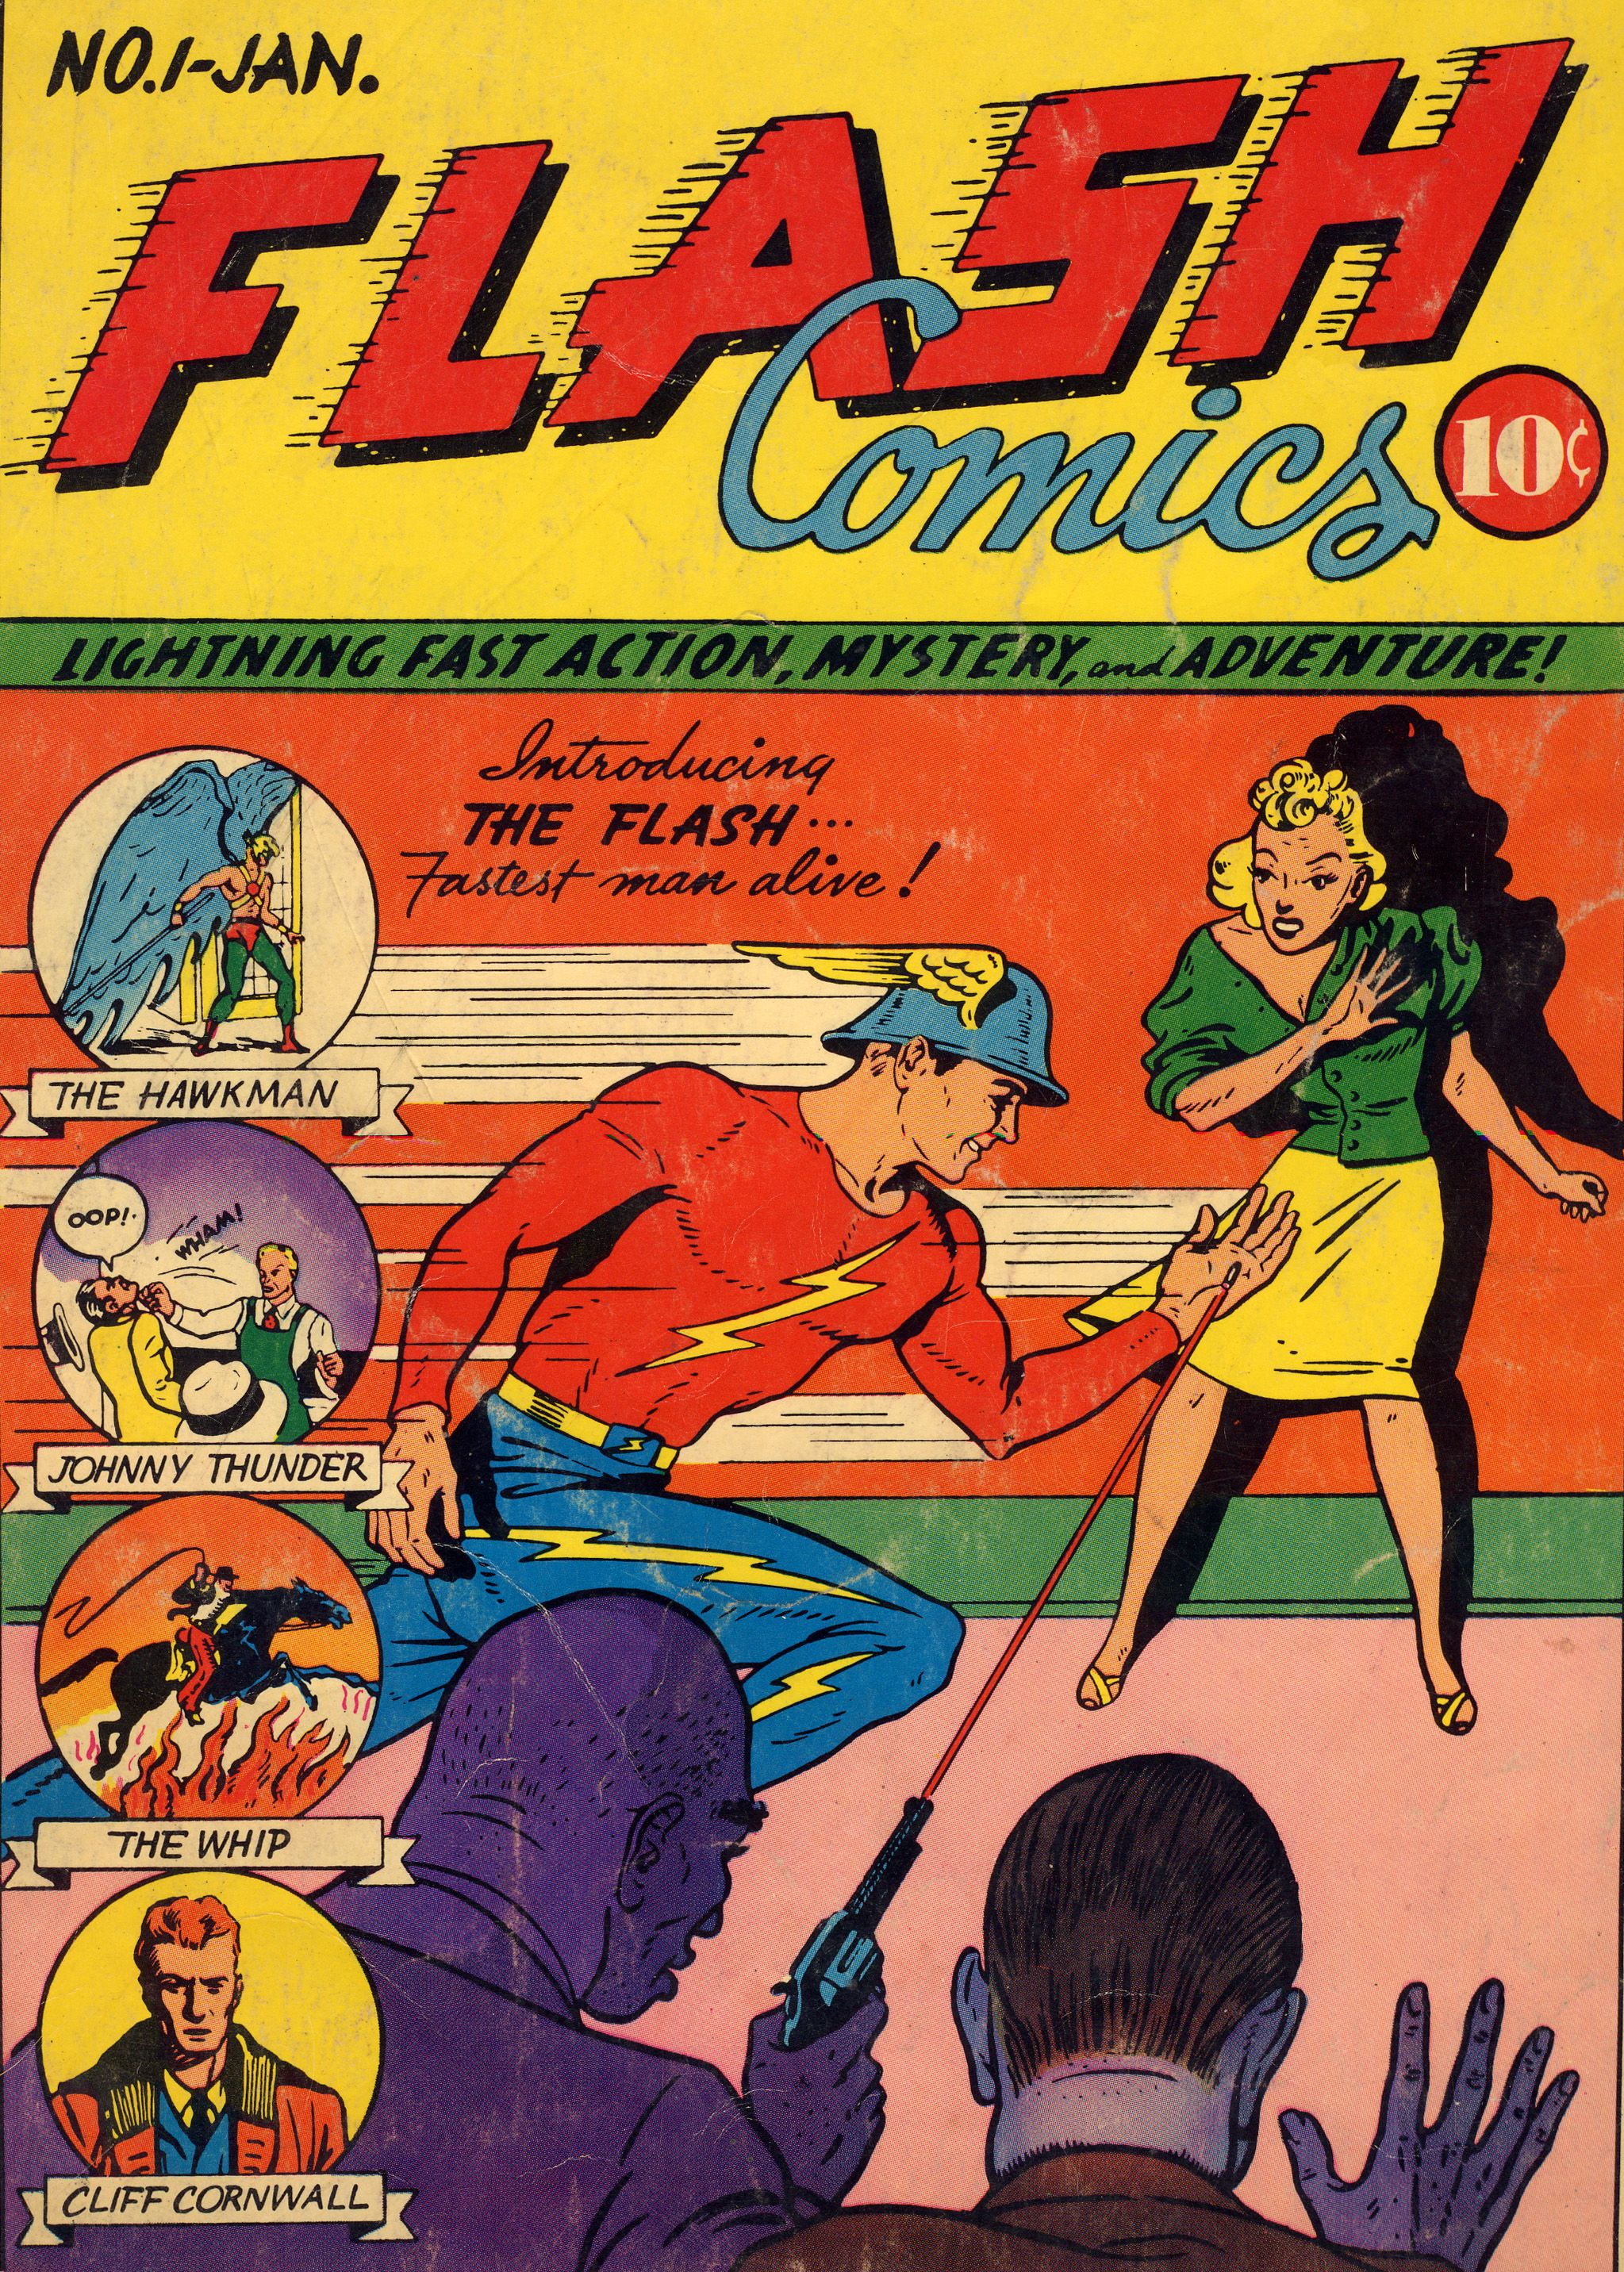 flash comics 001  1940  the flash  jay garrick   first appearance   origin  his future wife joan